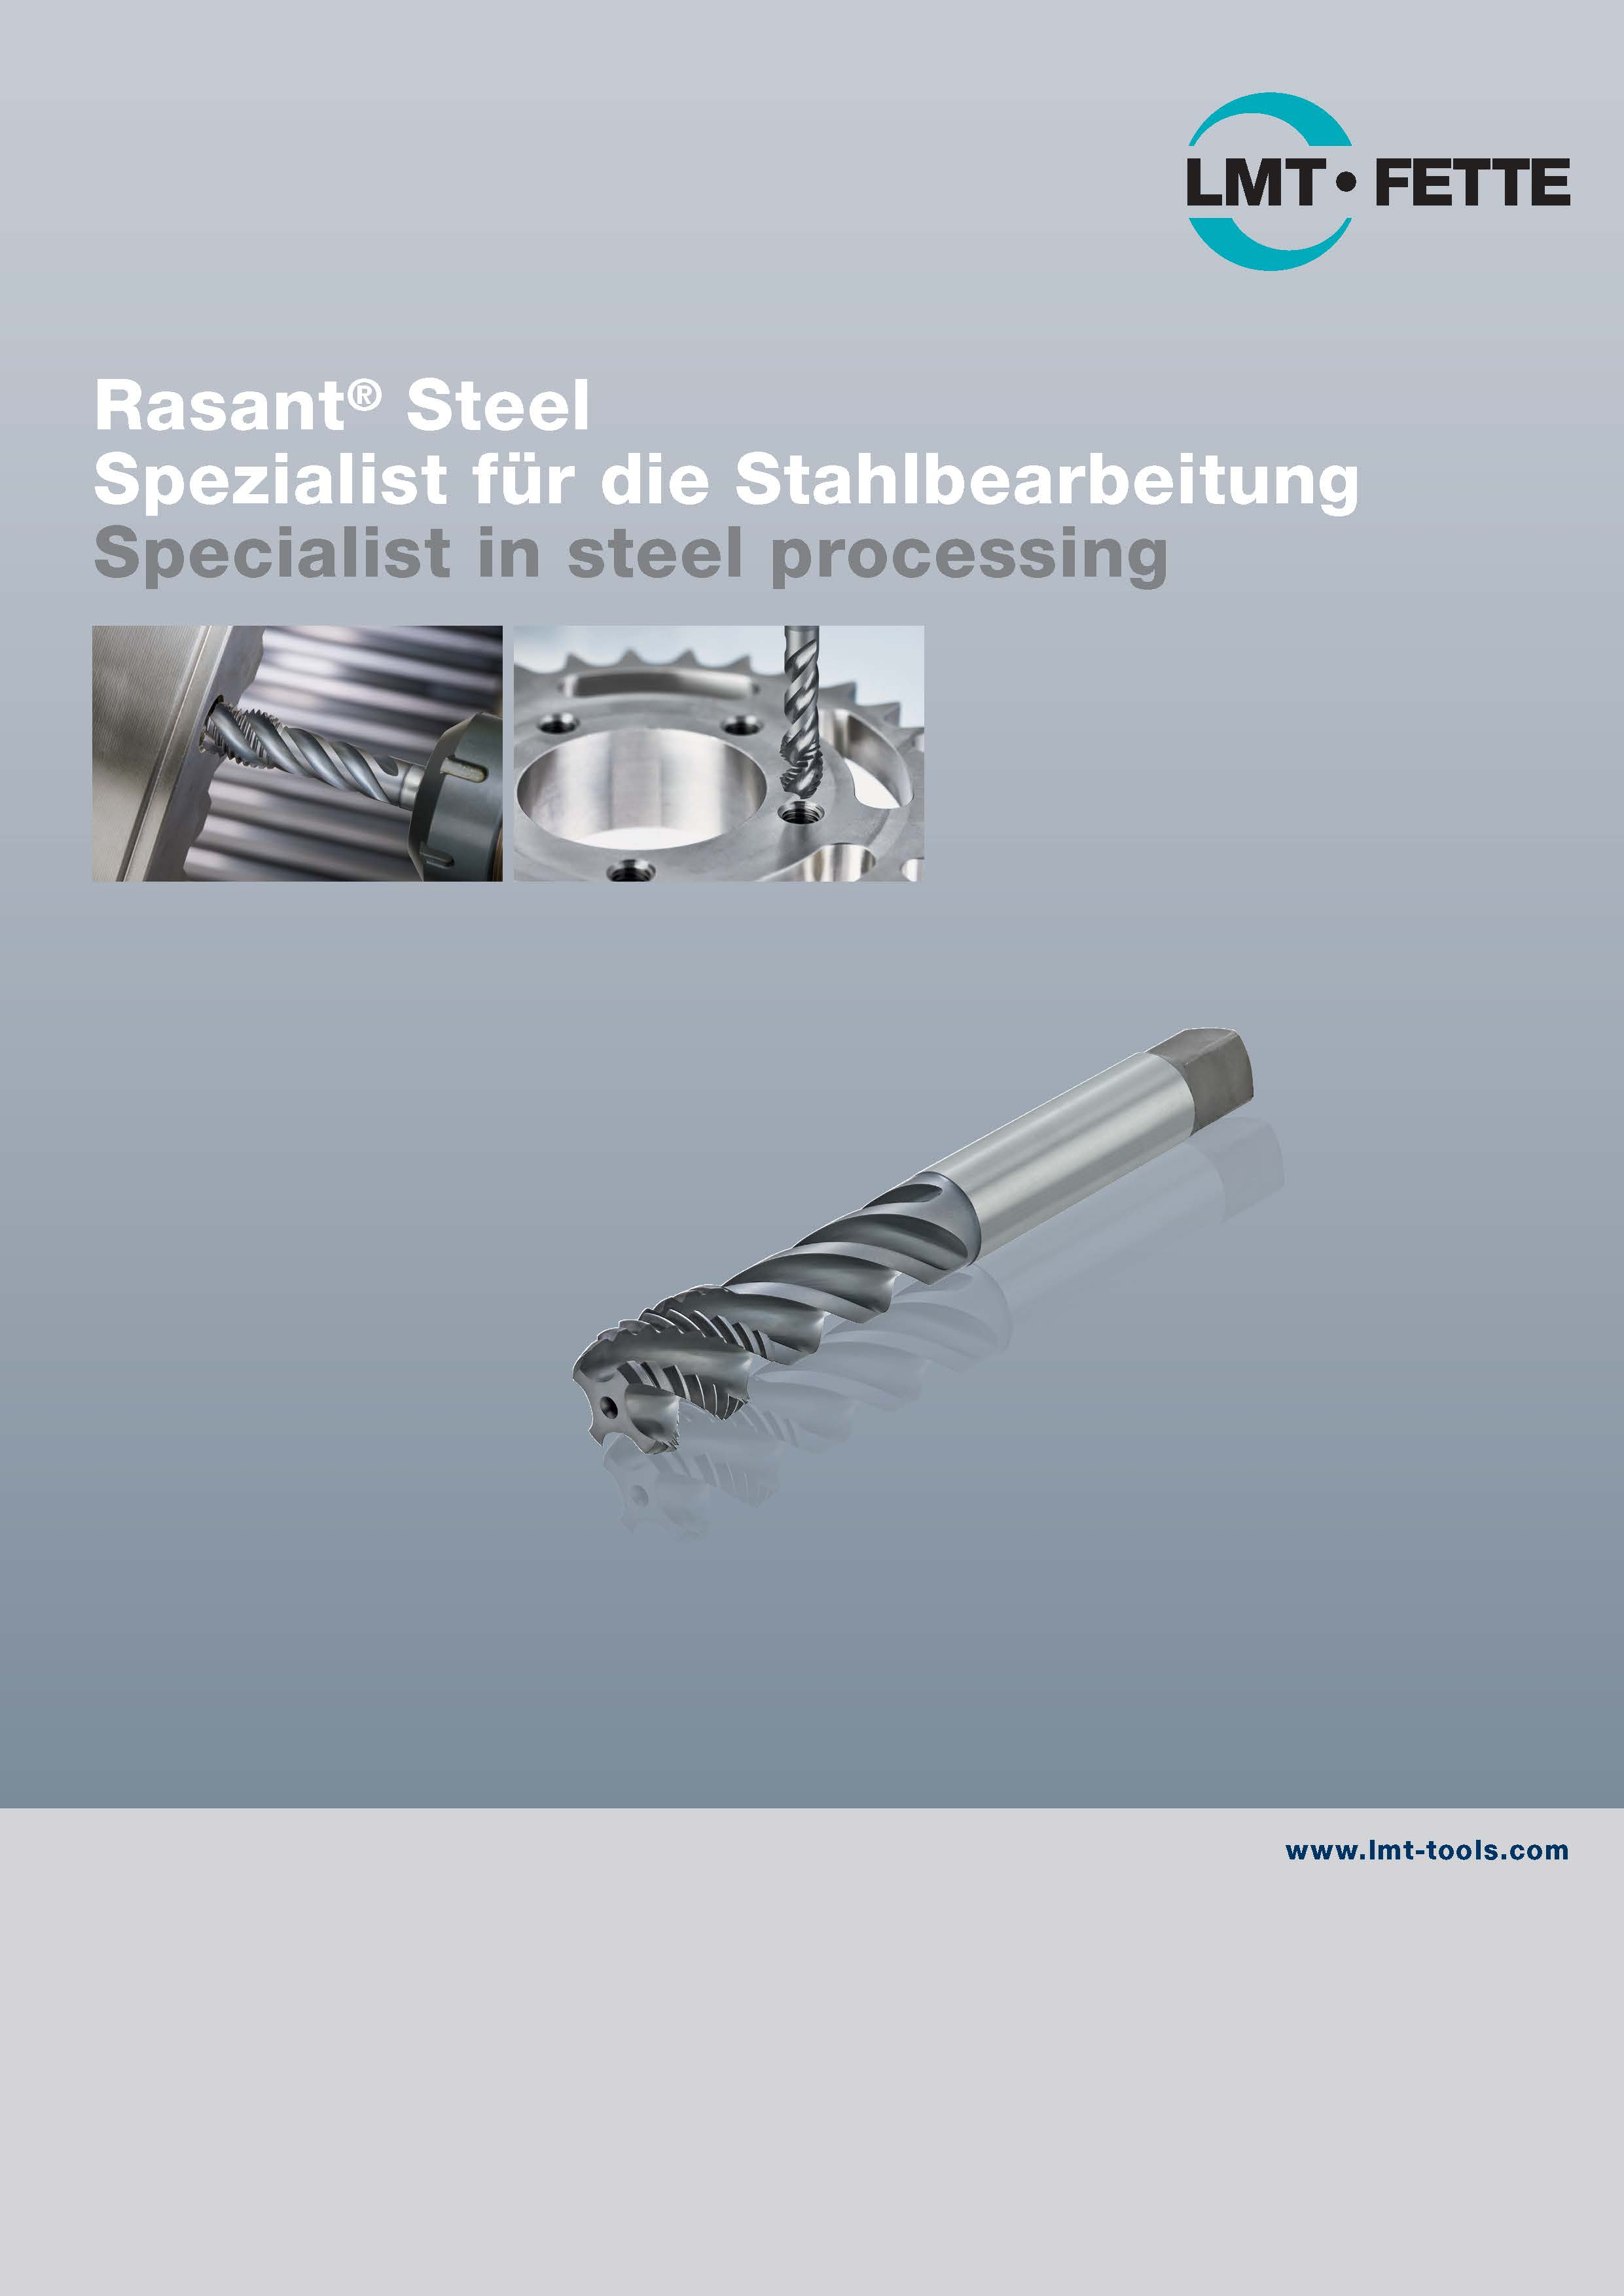 Rasant Steel: Tap for steel processing